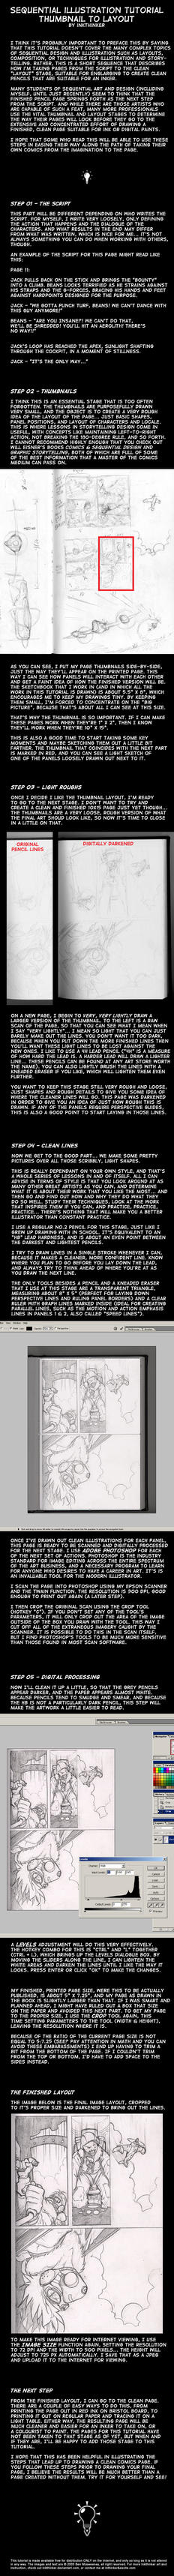 Comics - Thumbnail to Layout by Inkthinker